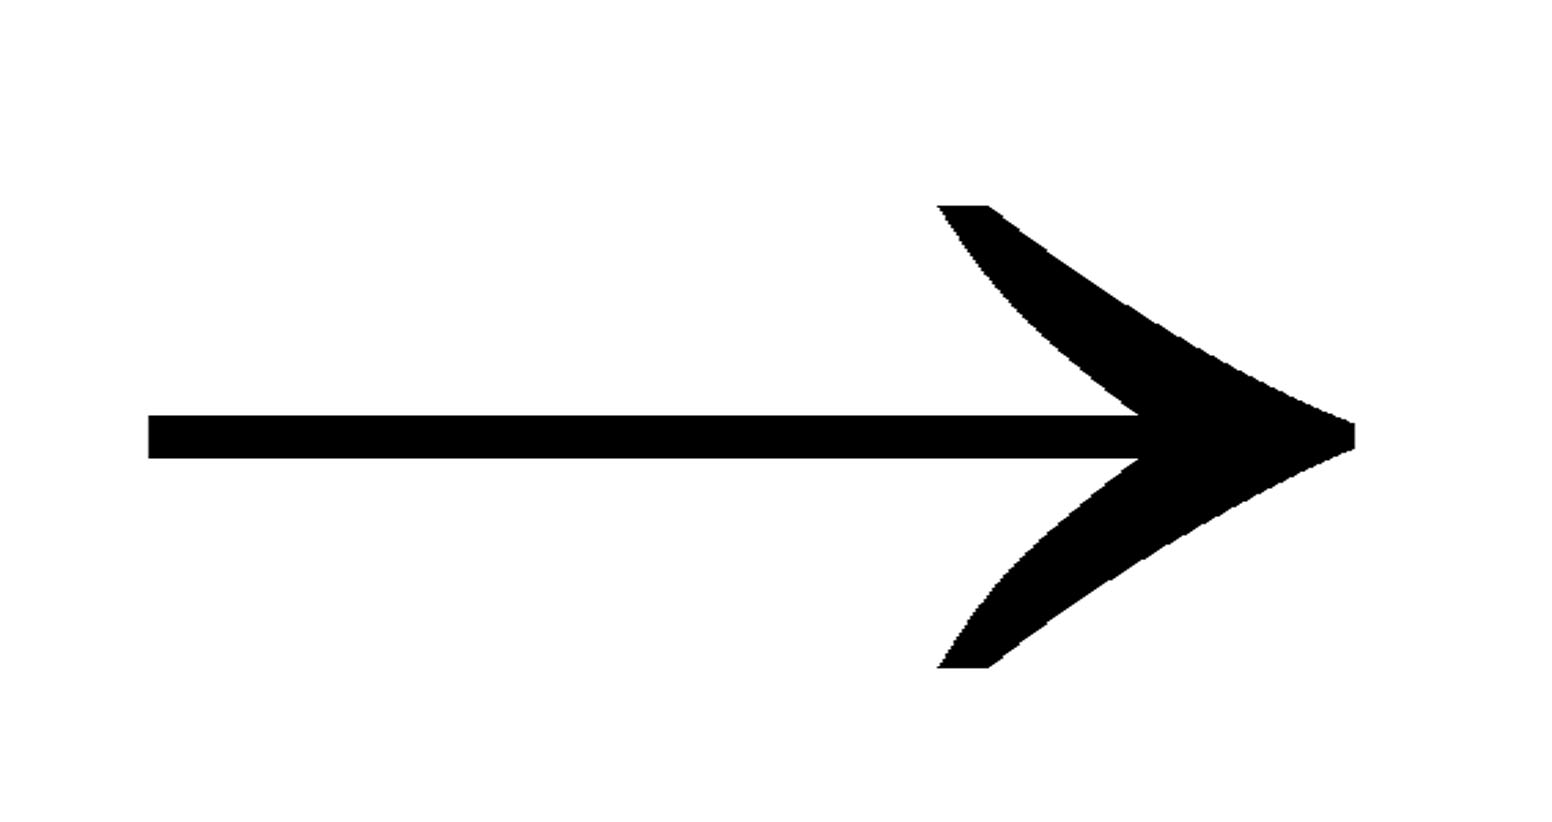 Free Fancy Arrow Clipart Black And White, Download Free Clip.